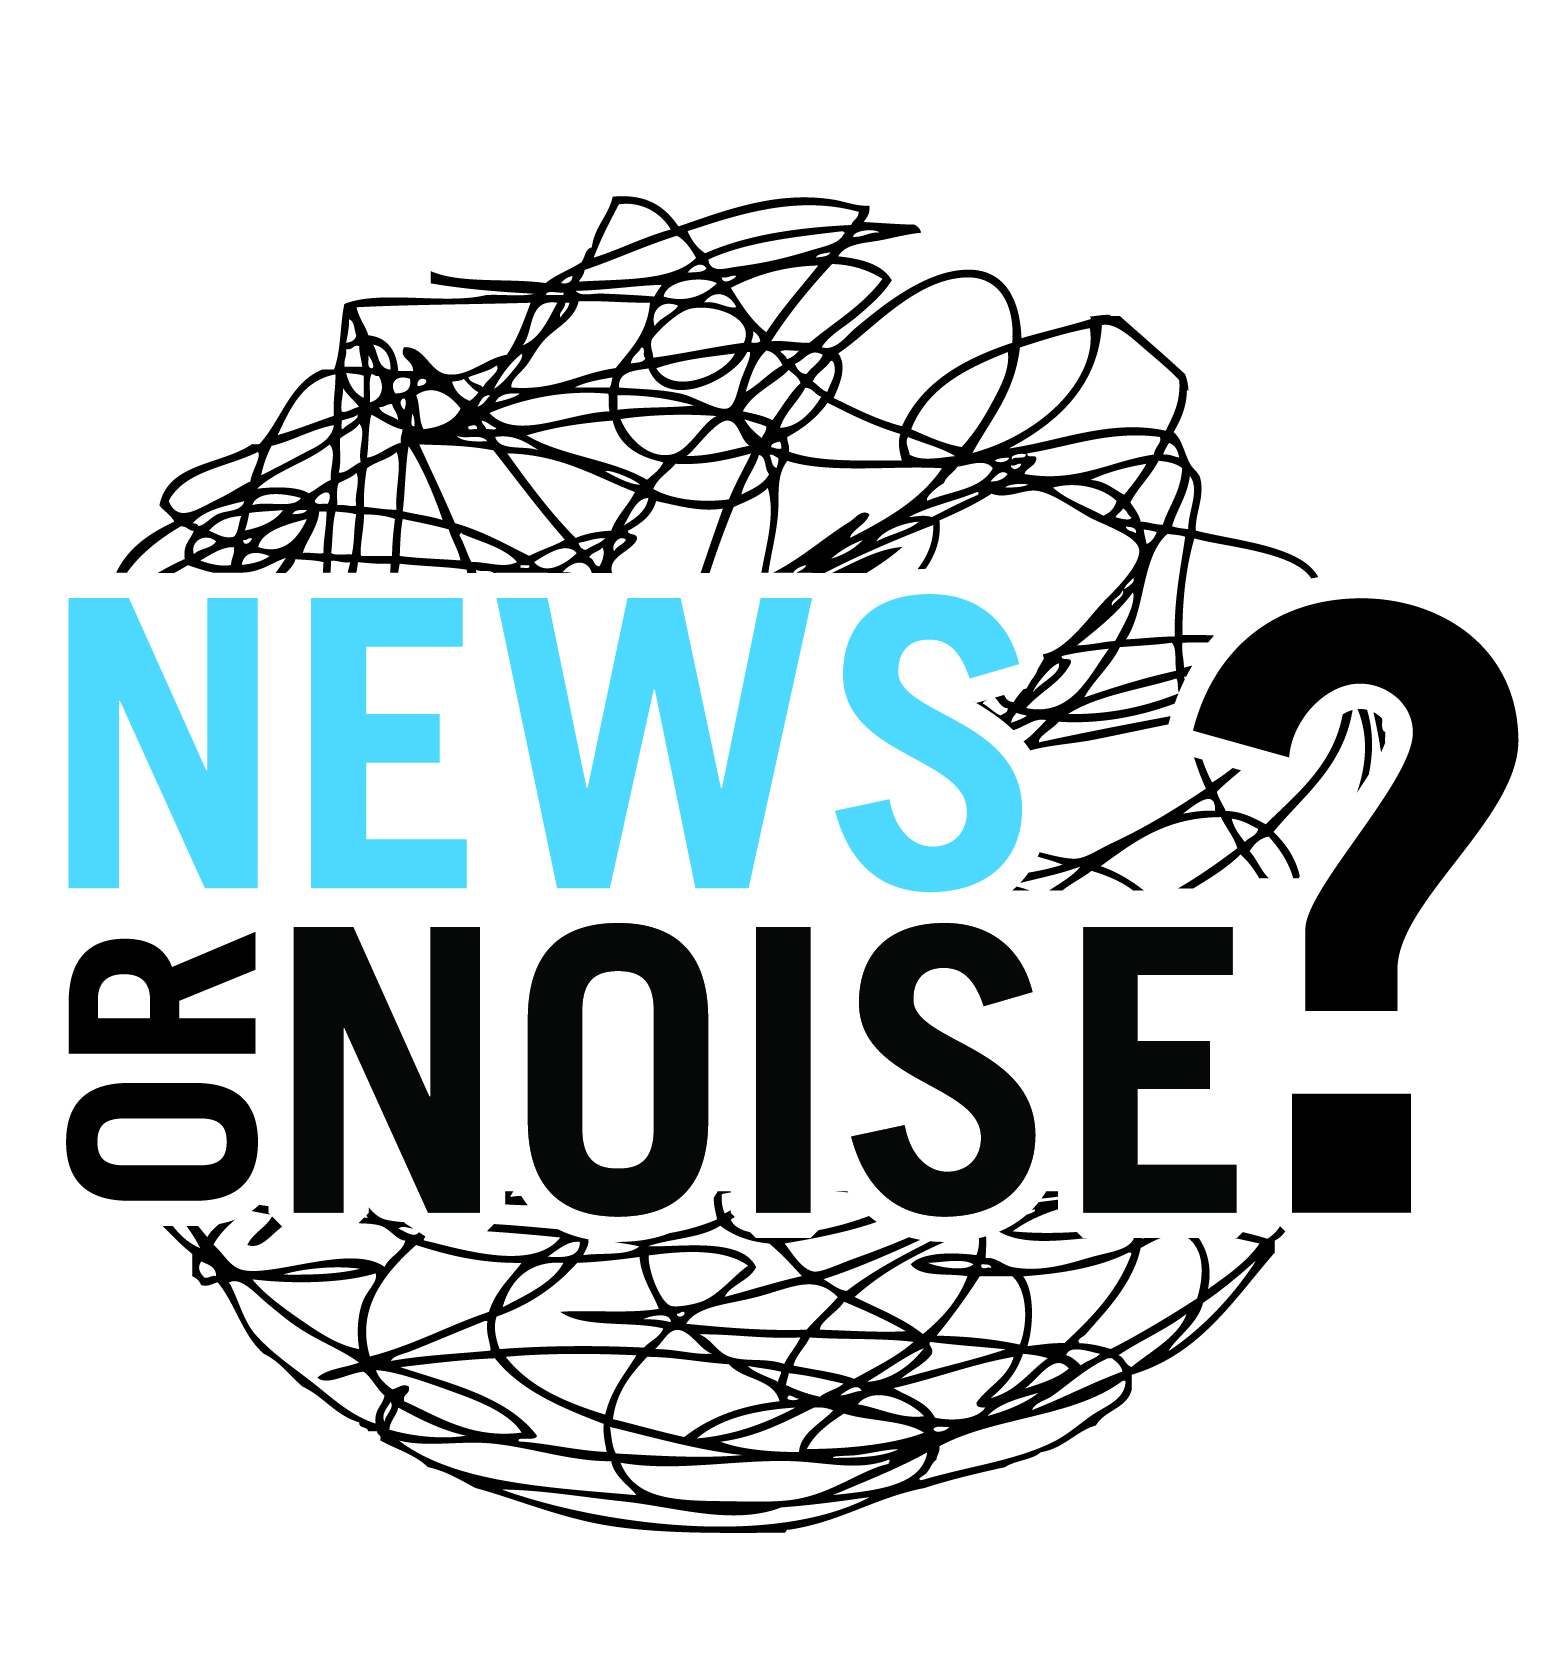 News or Noise? Decisions Edition